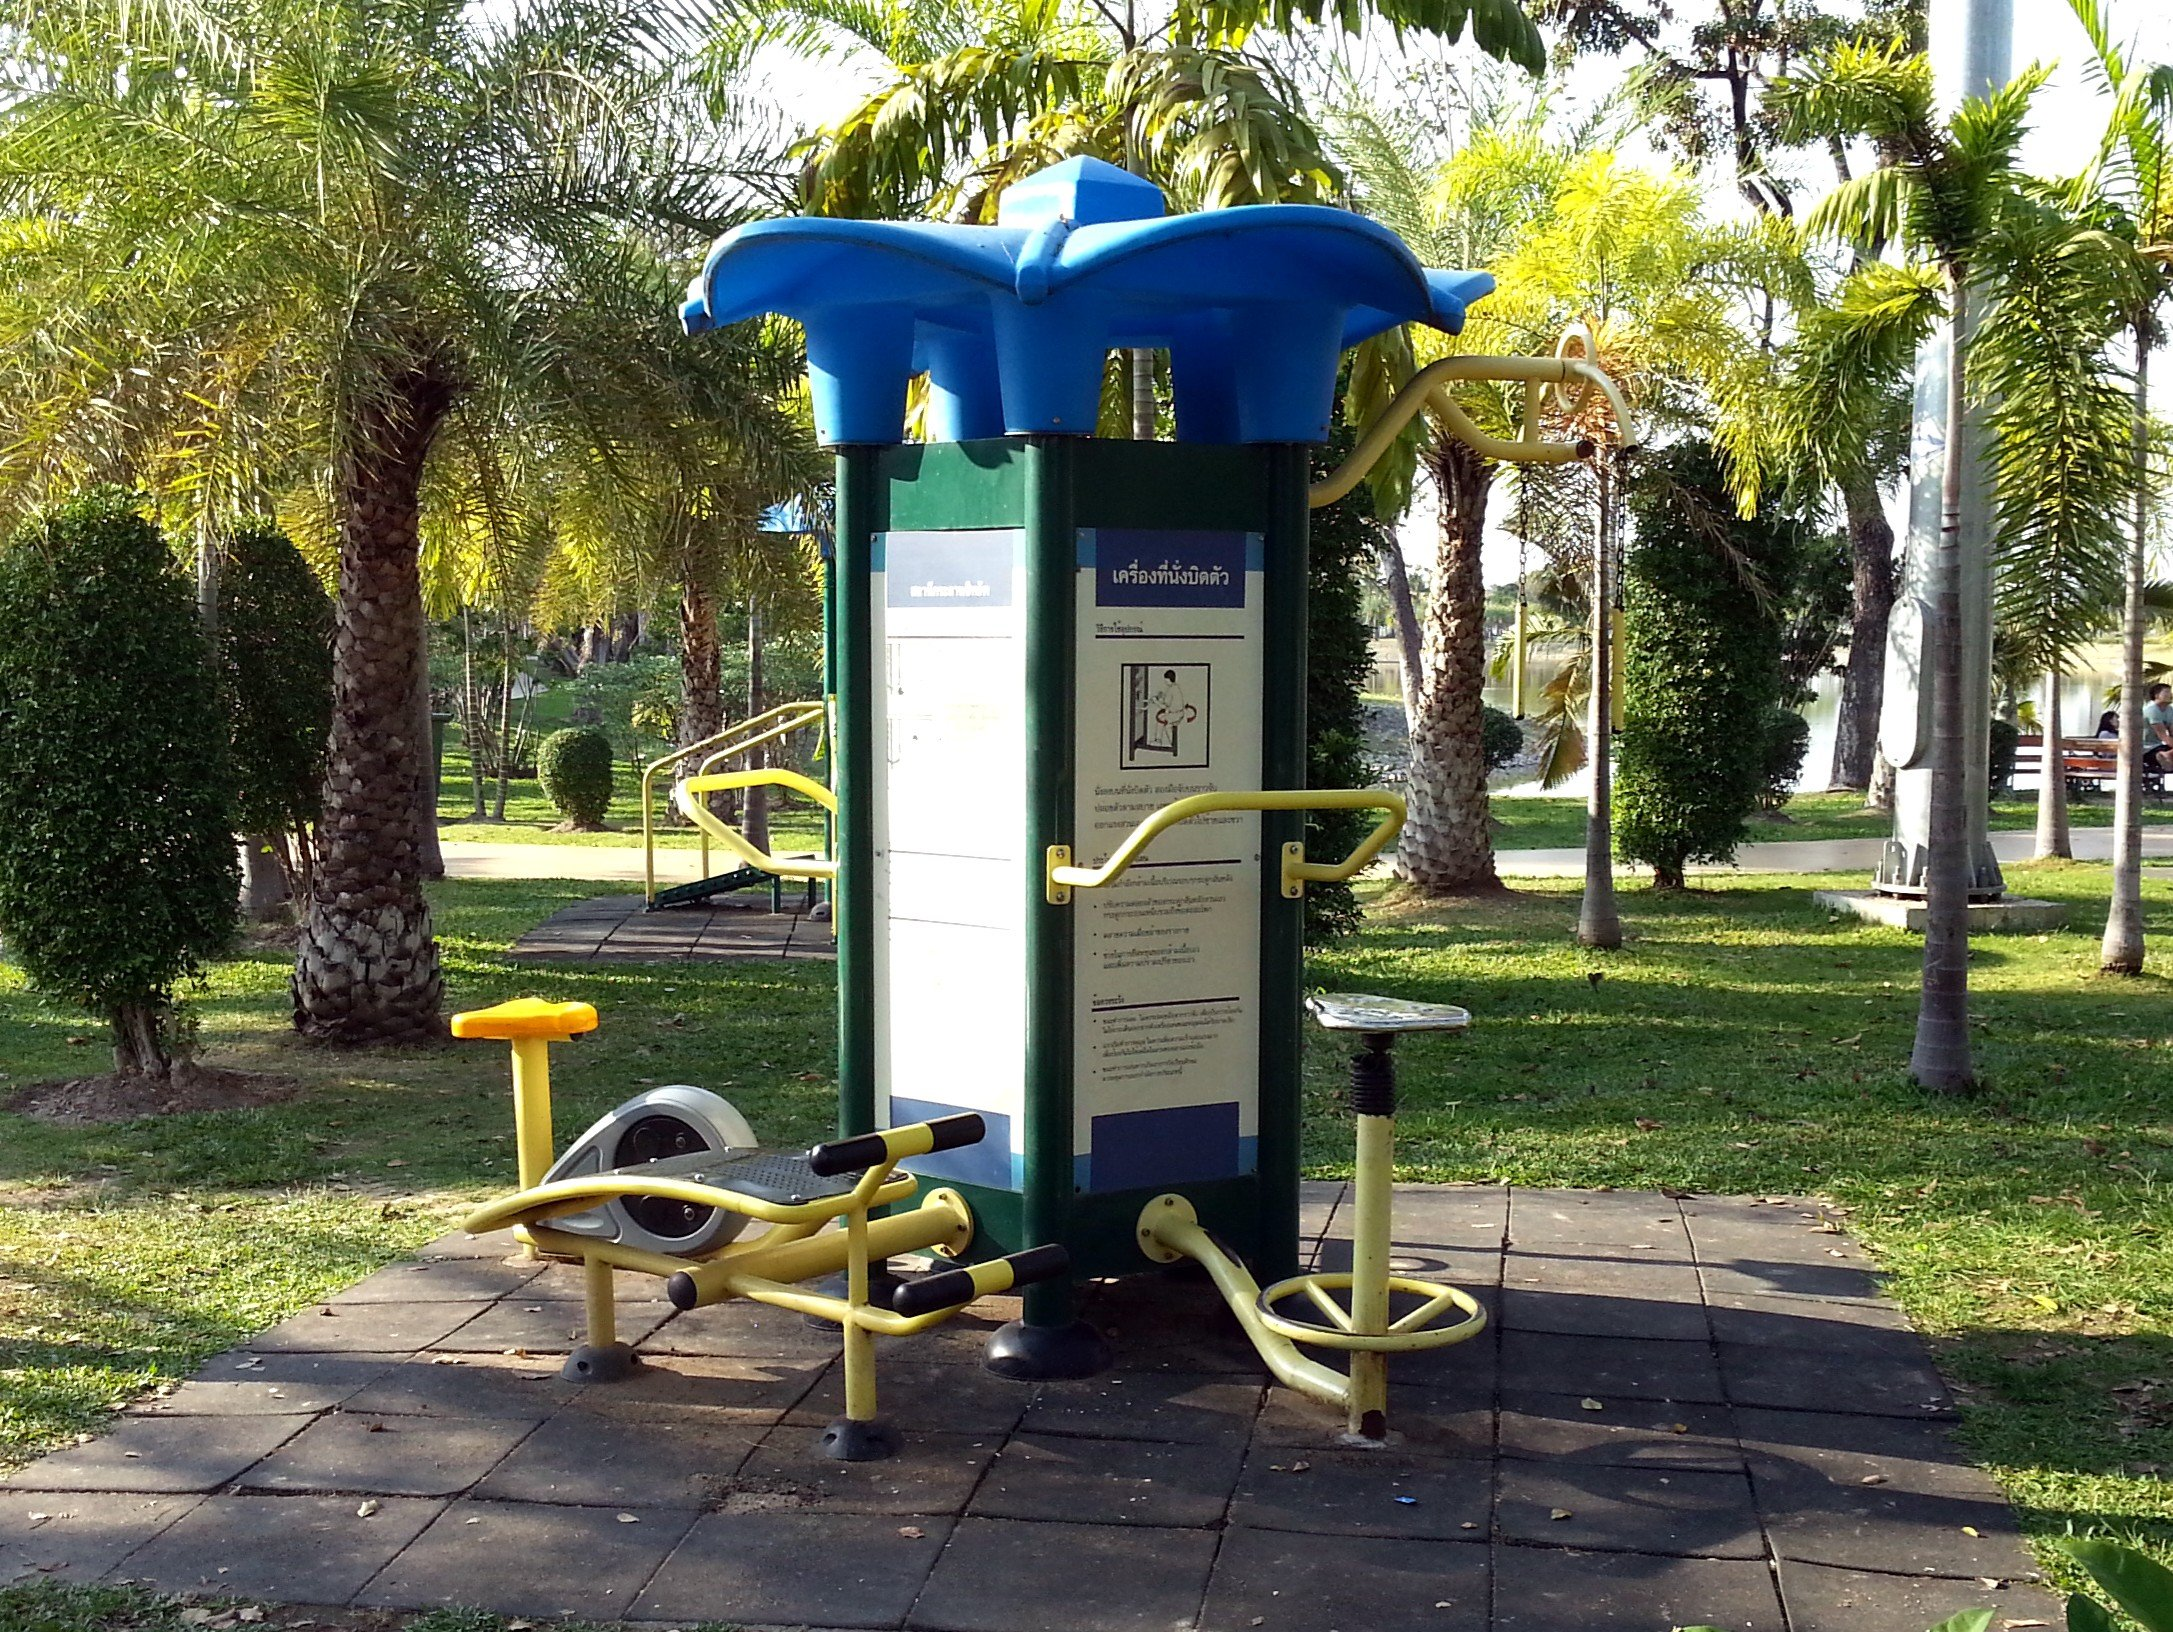 Gym facilities in Nong Prajak Park